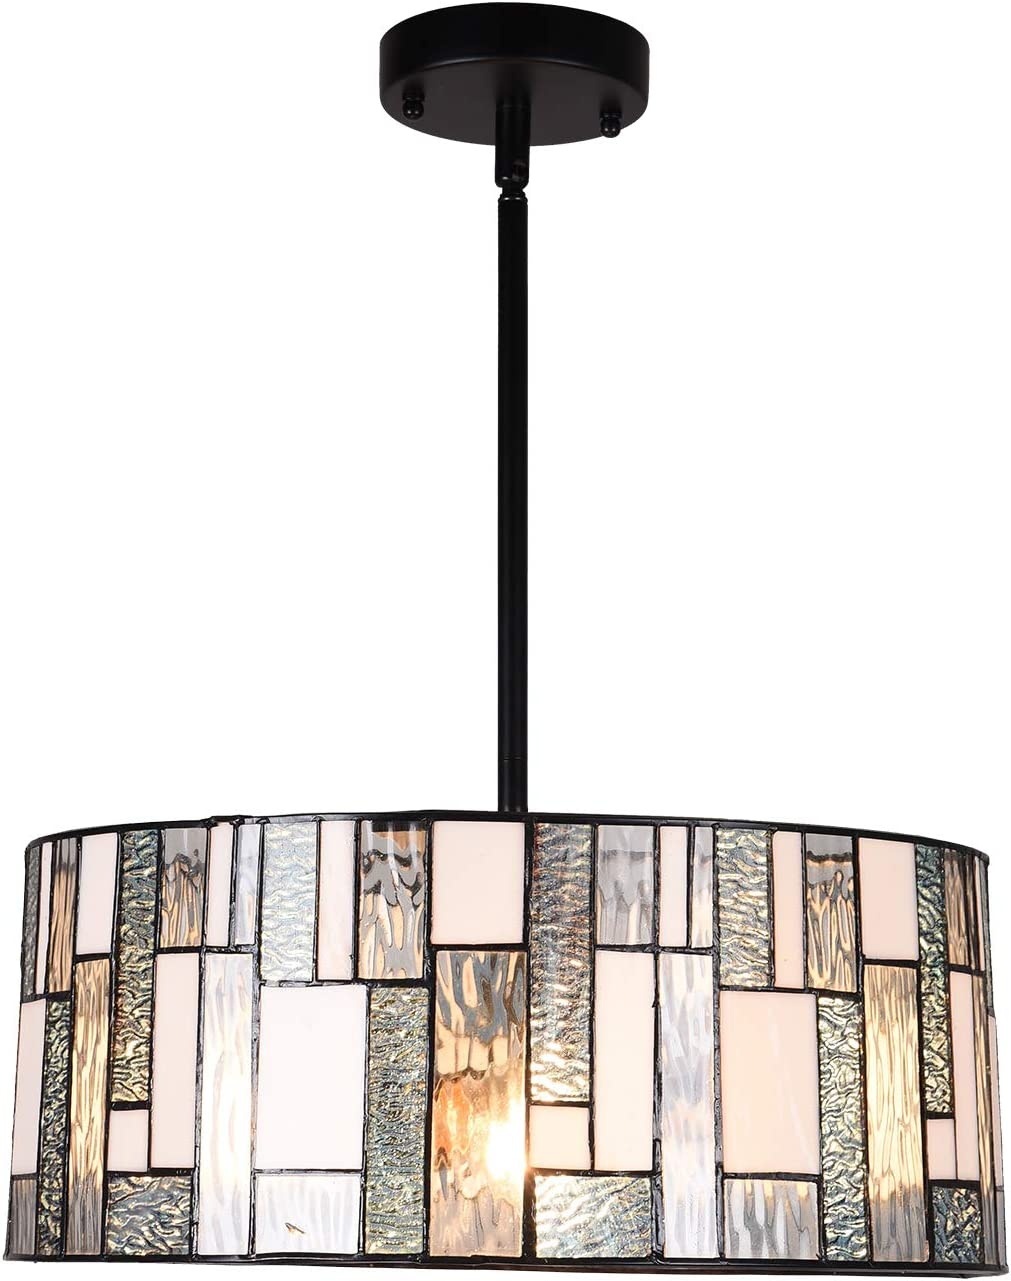 Artzone Tiffany Pendant Lighting Fixtures Inch Factory Manufacturer OFFicial shop outlet W16.5 Wide H49.6